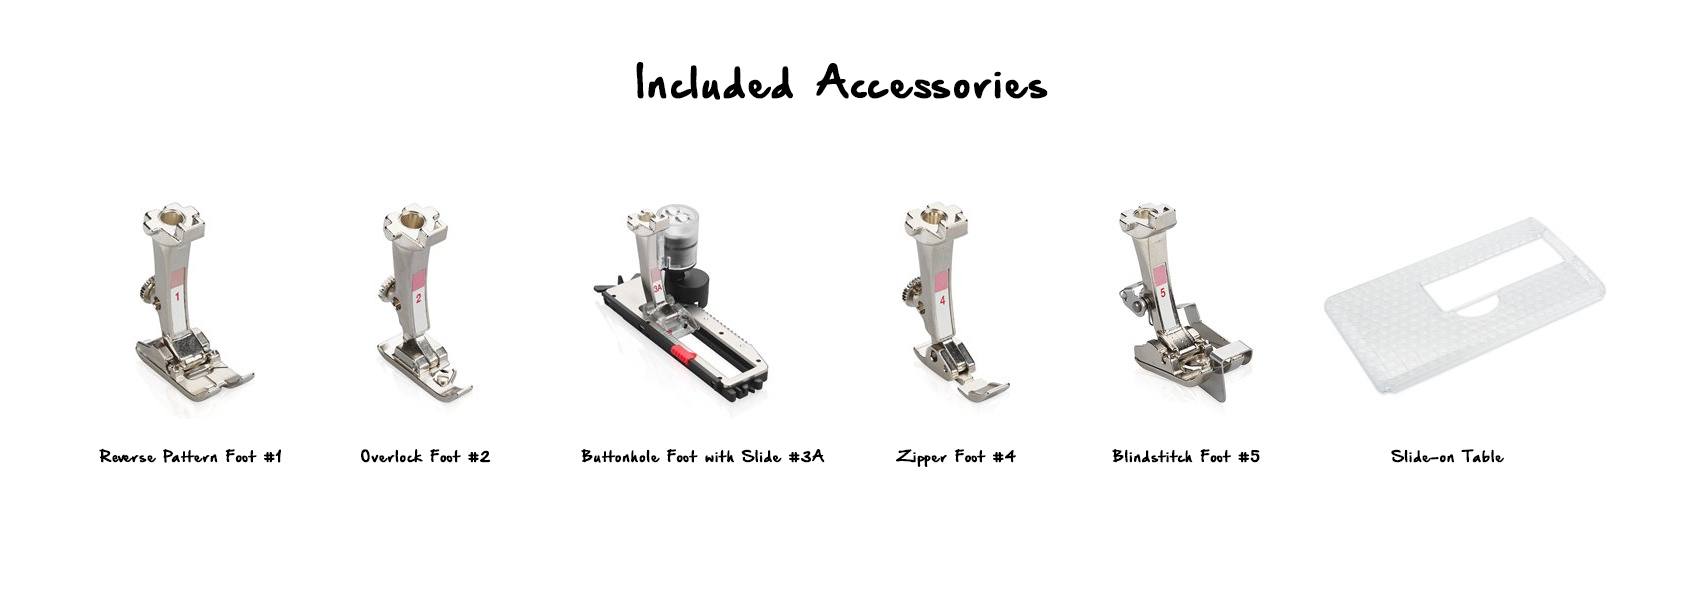 435-included-accessories.jpg